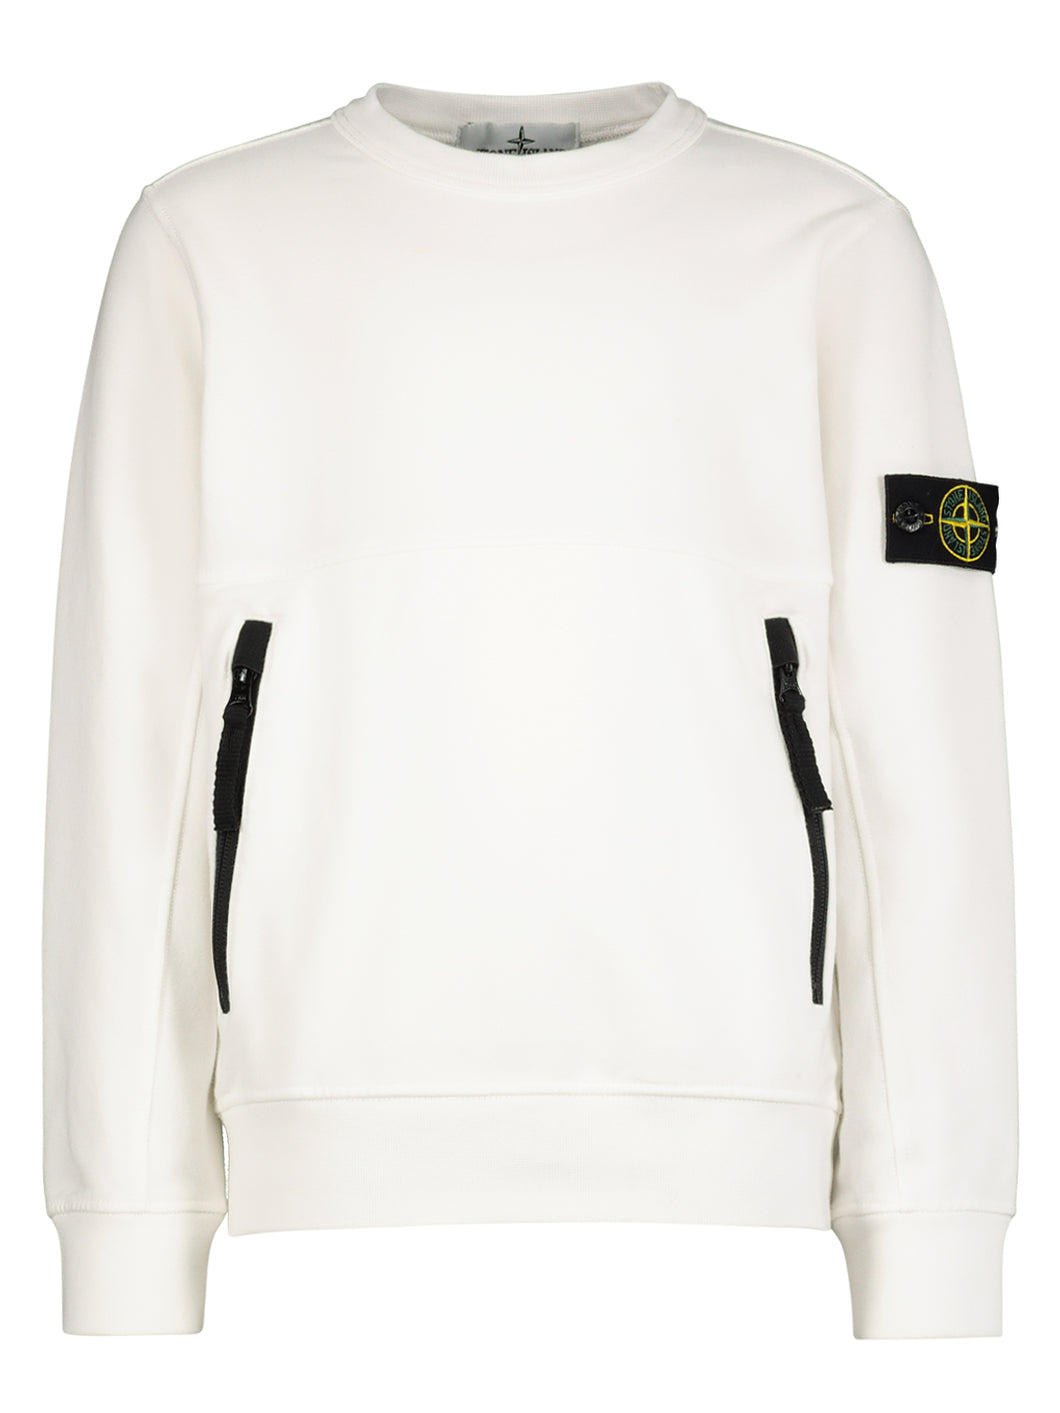 Felpa Stone Island bianca - Junior & Co.it